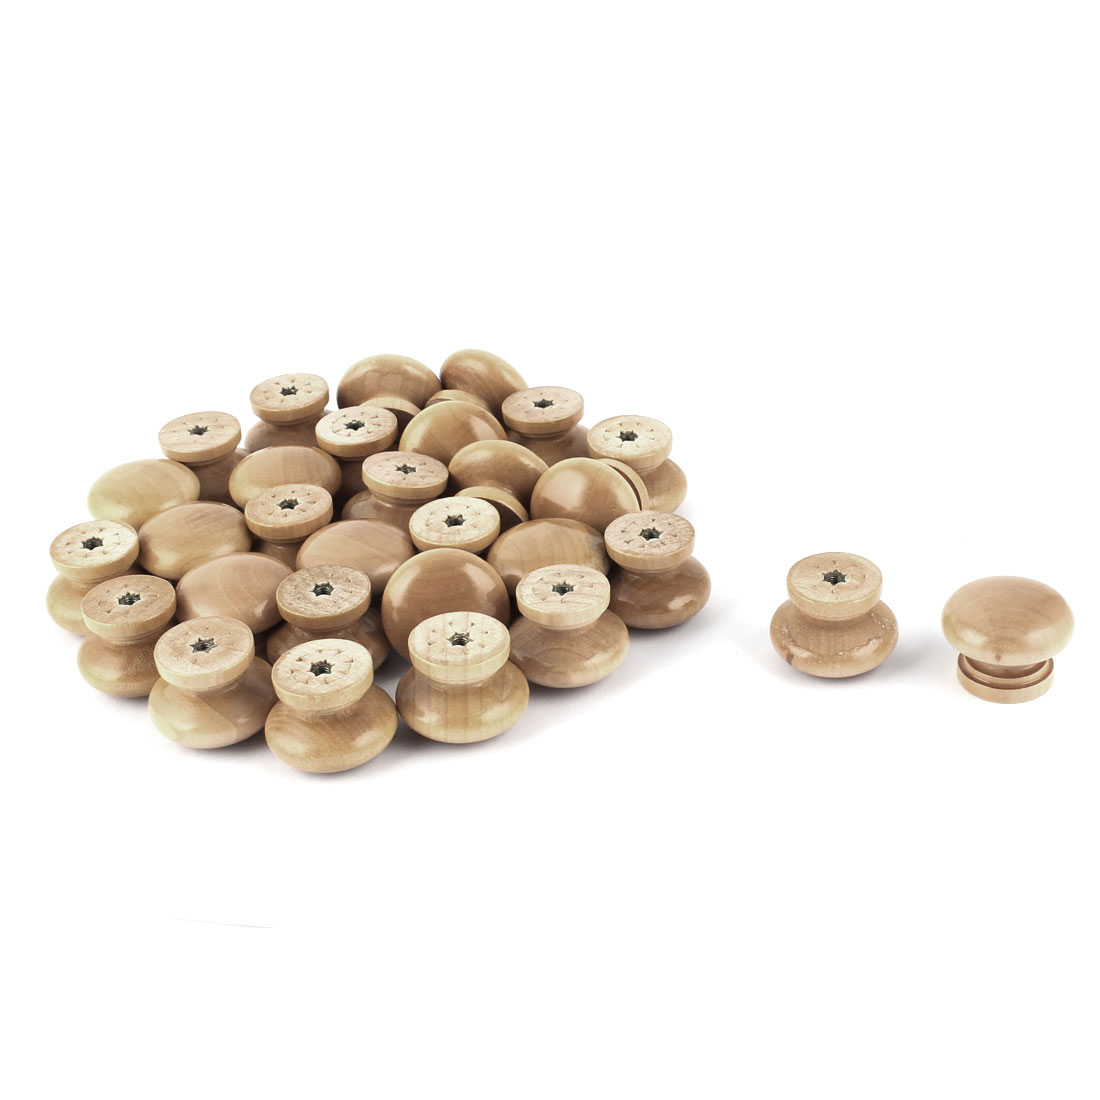 Home Office Kitchen Wooden Round Shaped Cabinet Drawer Pull Knob Handle 30 Pcs